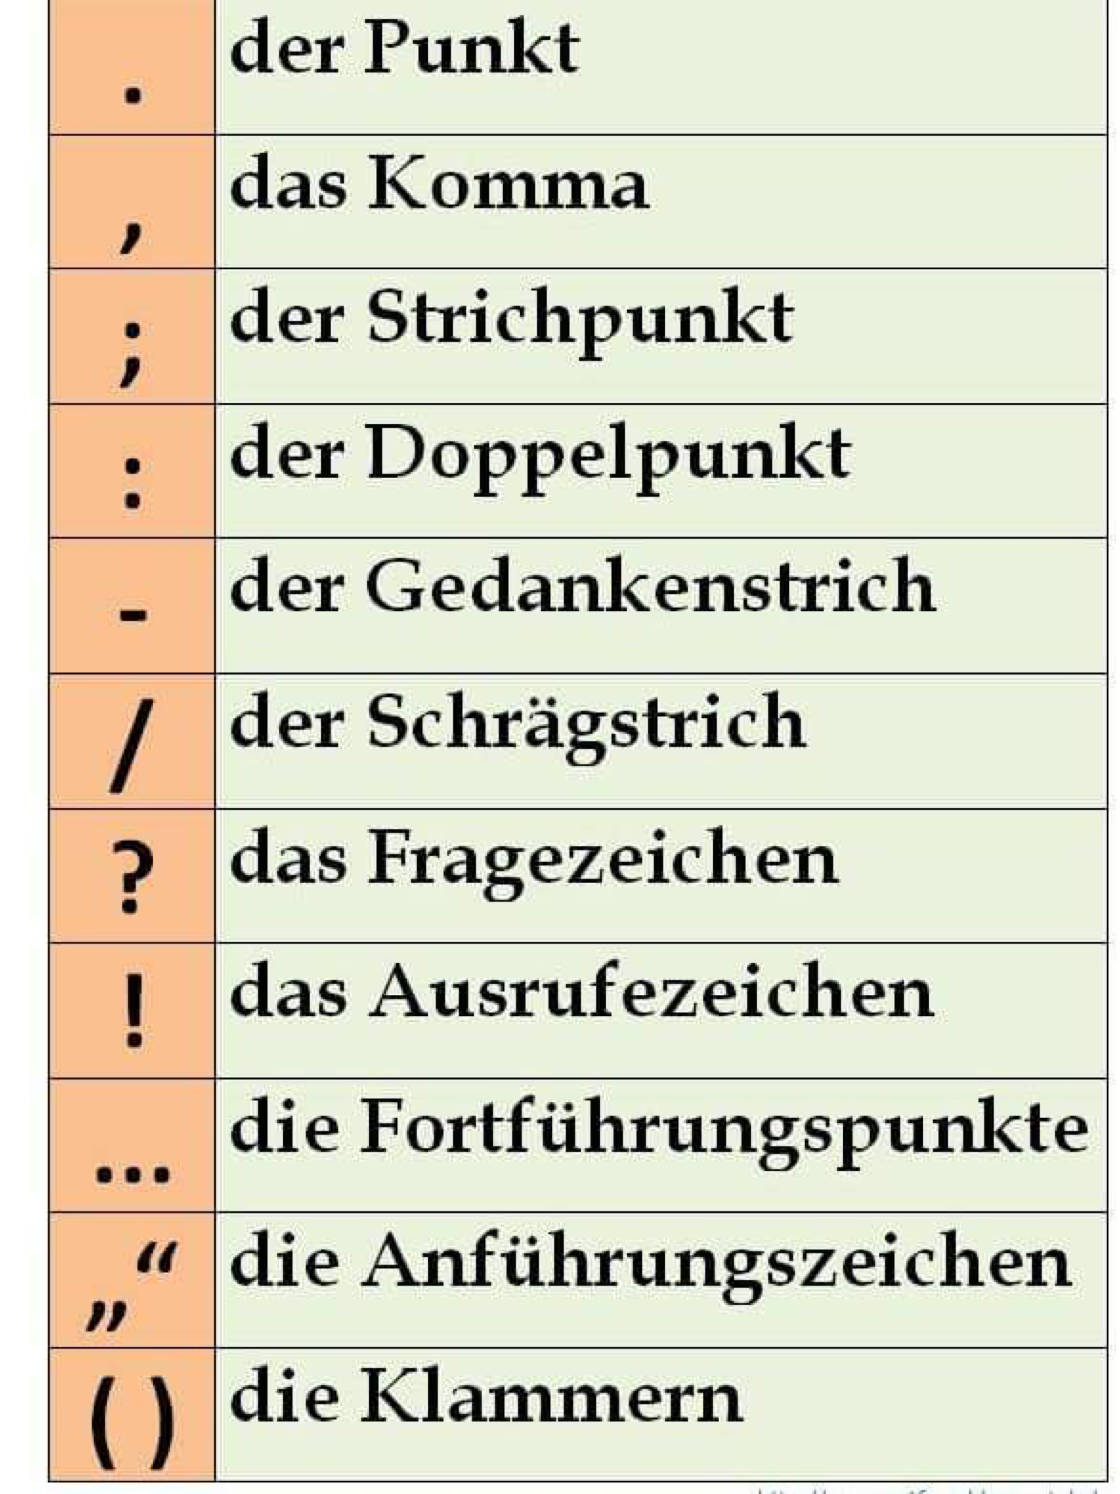 German punctuation | Deutsch Sprache | Pinterest | Punctuation